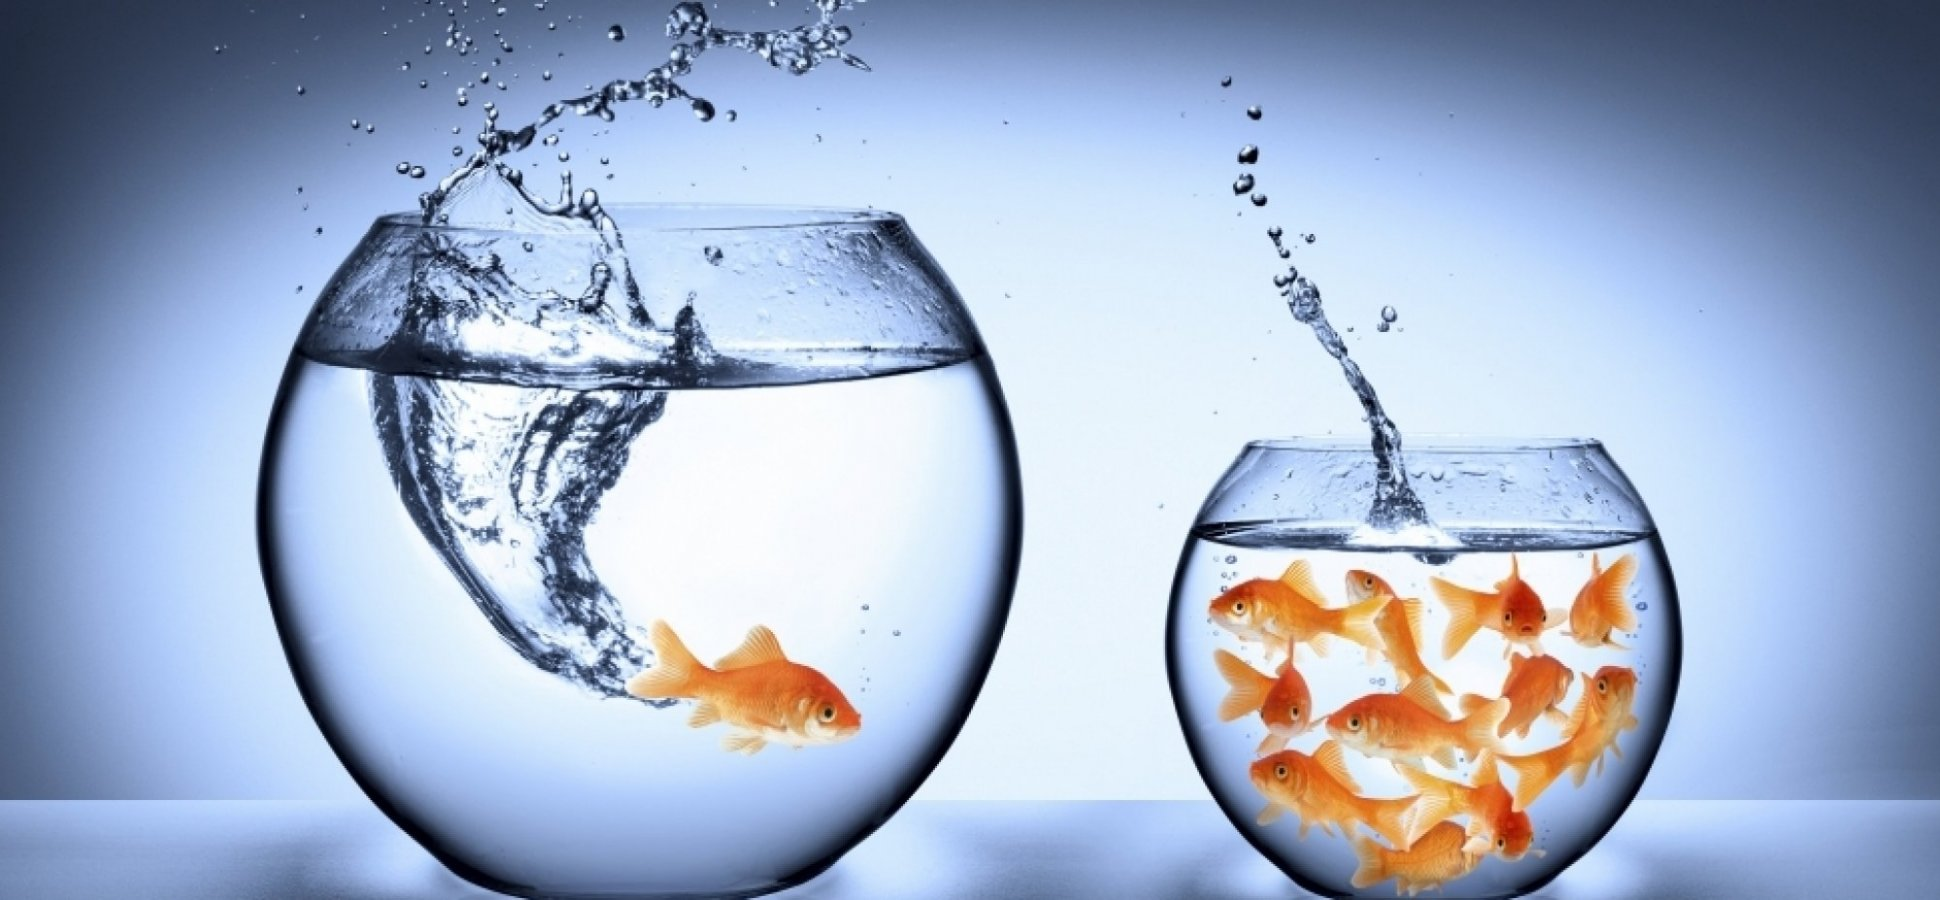 Small Fish, Big Pond: Can Small Business Survive on Social Media?